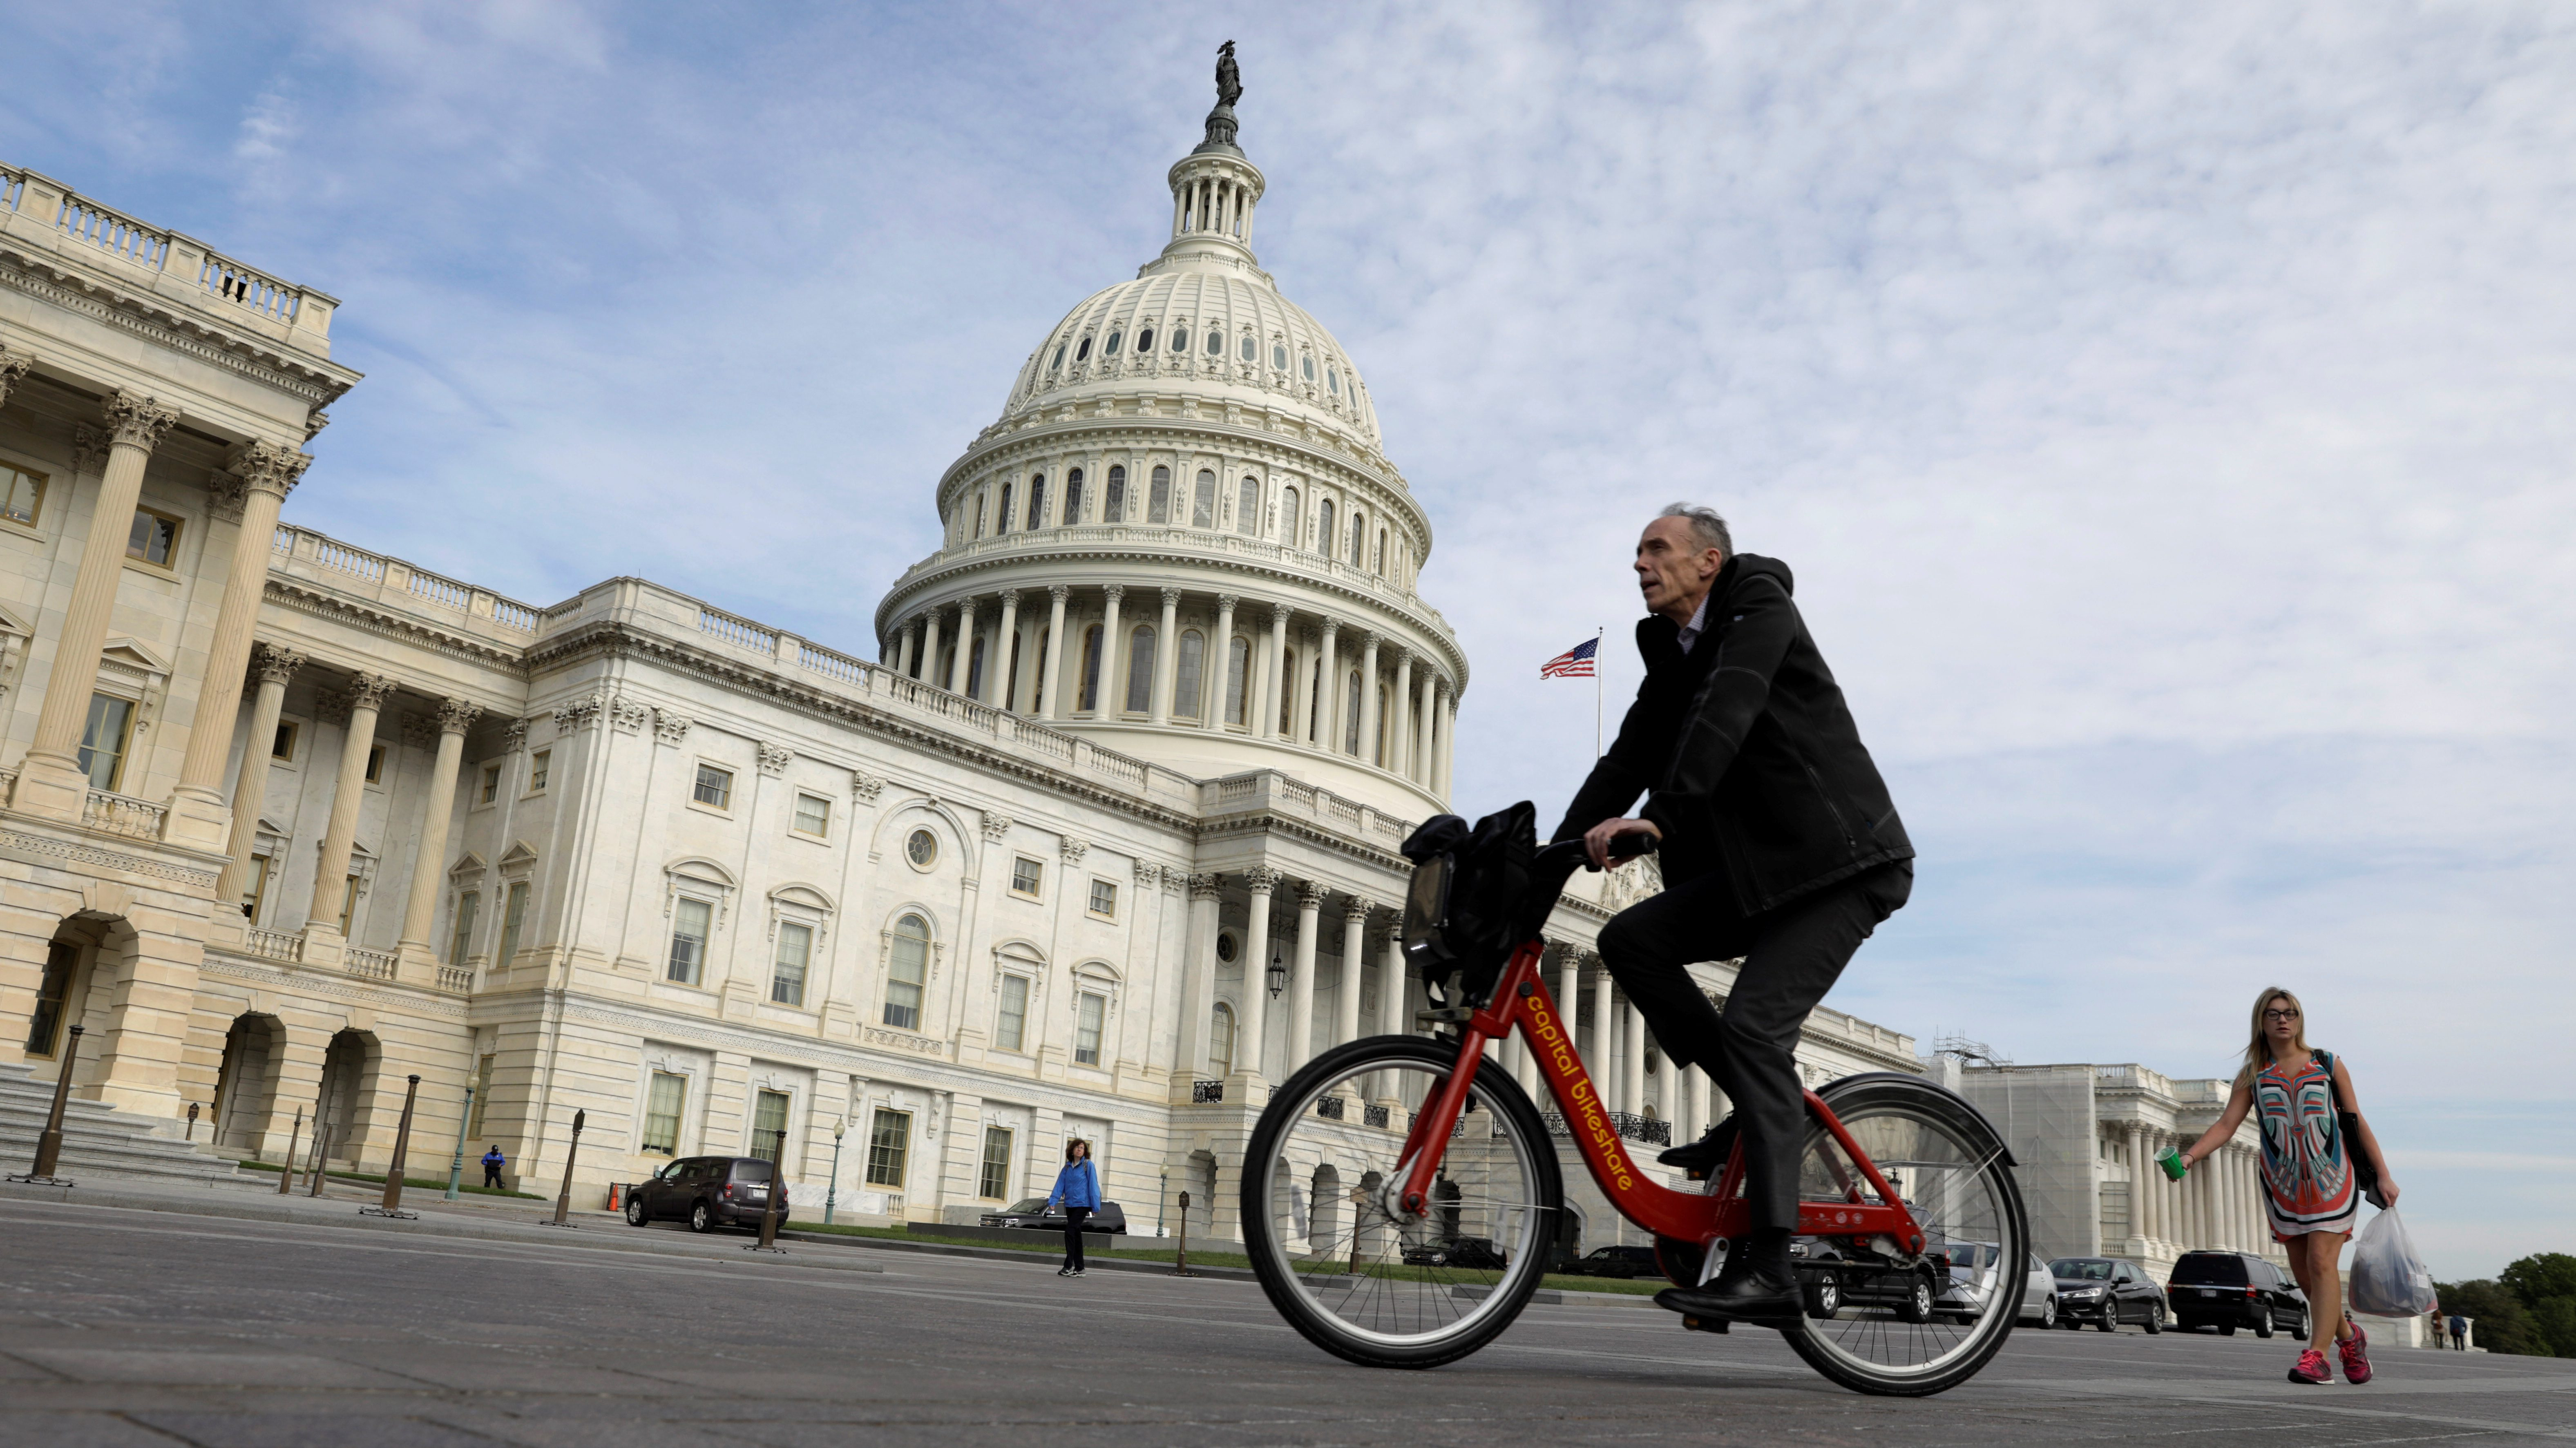 A cyclist passes the the U.S. Capitol, on the day the House is expected to vote here to repeal Obamacare in Washington, D.C., U.S., May 4, 2017. REUTERS/Kevin Lamarque - RTS154YR